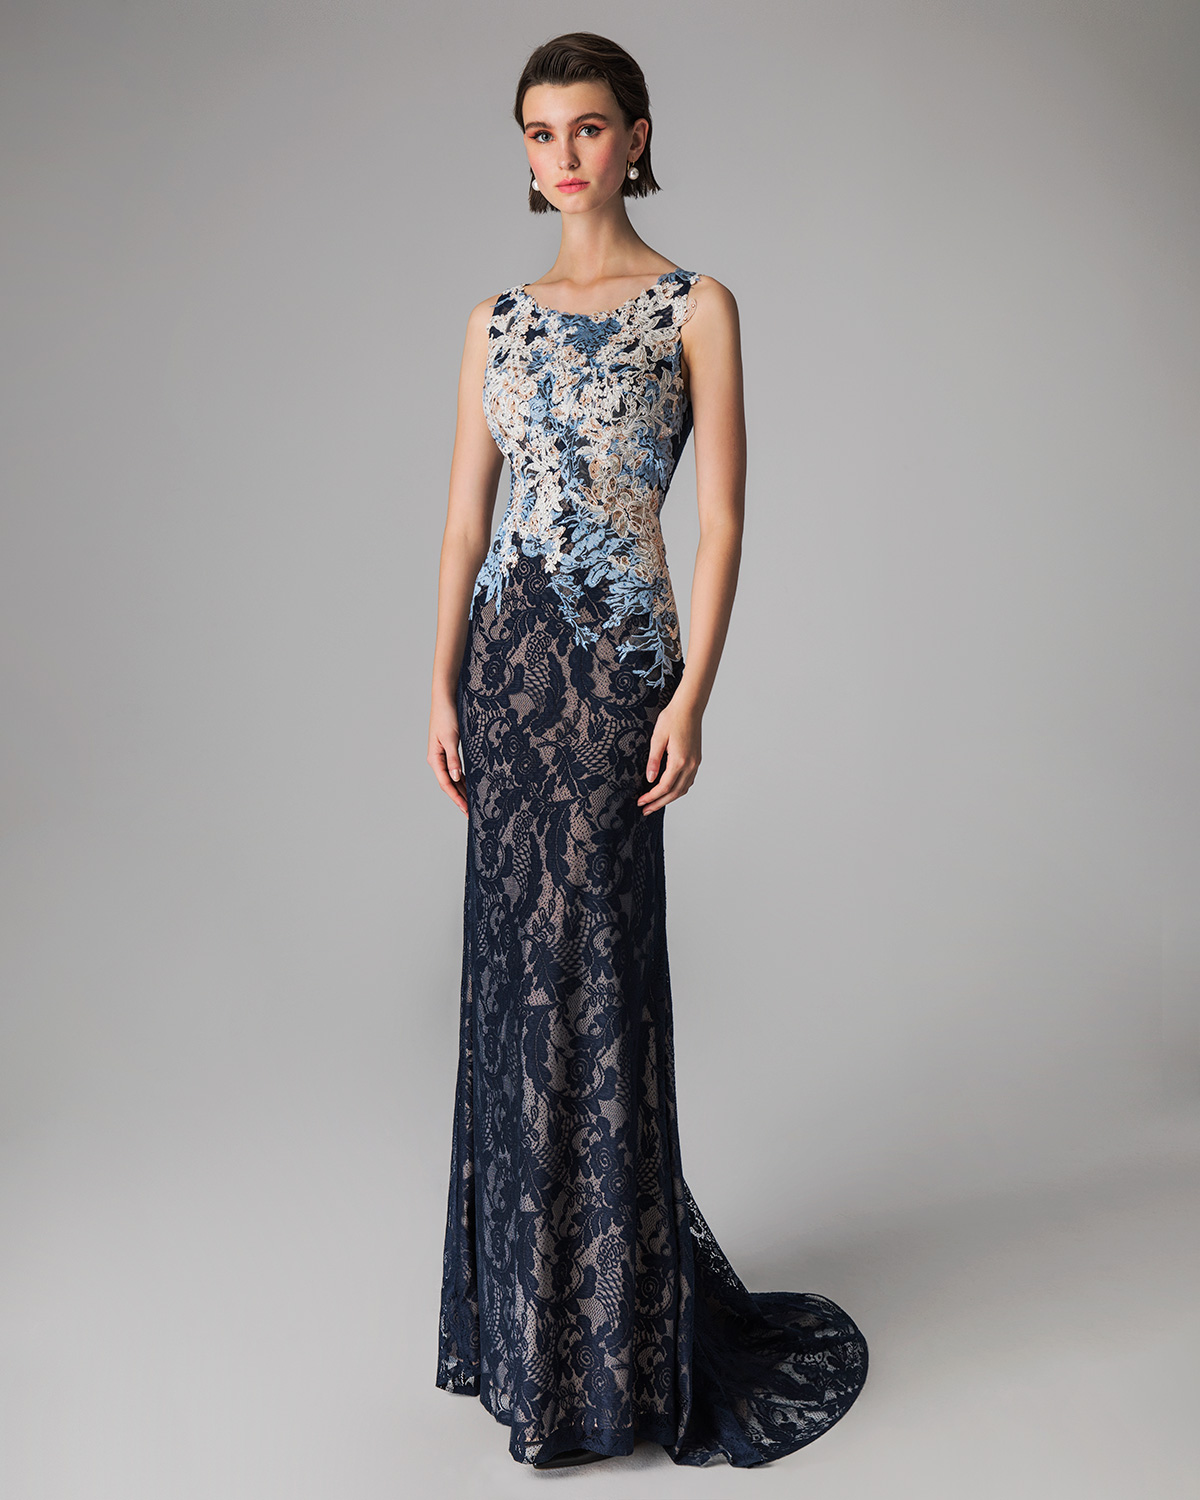 Classic Dresses / Long evening lace dress